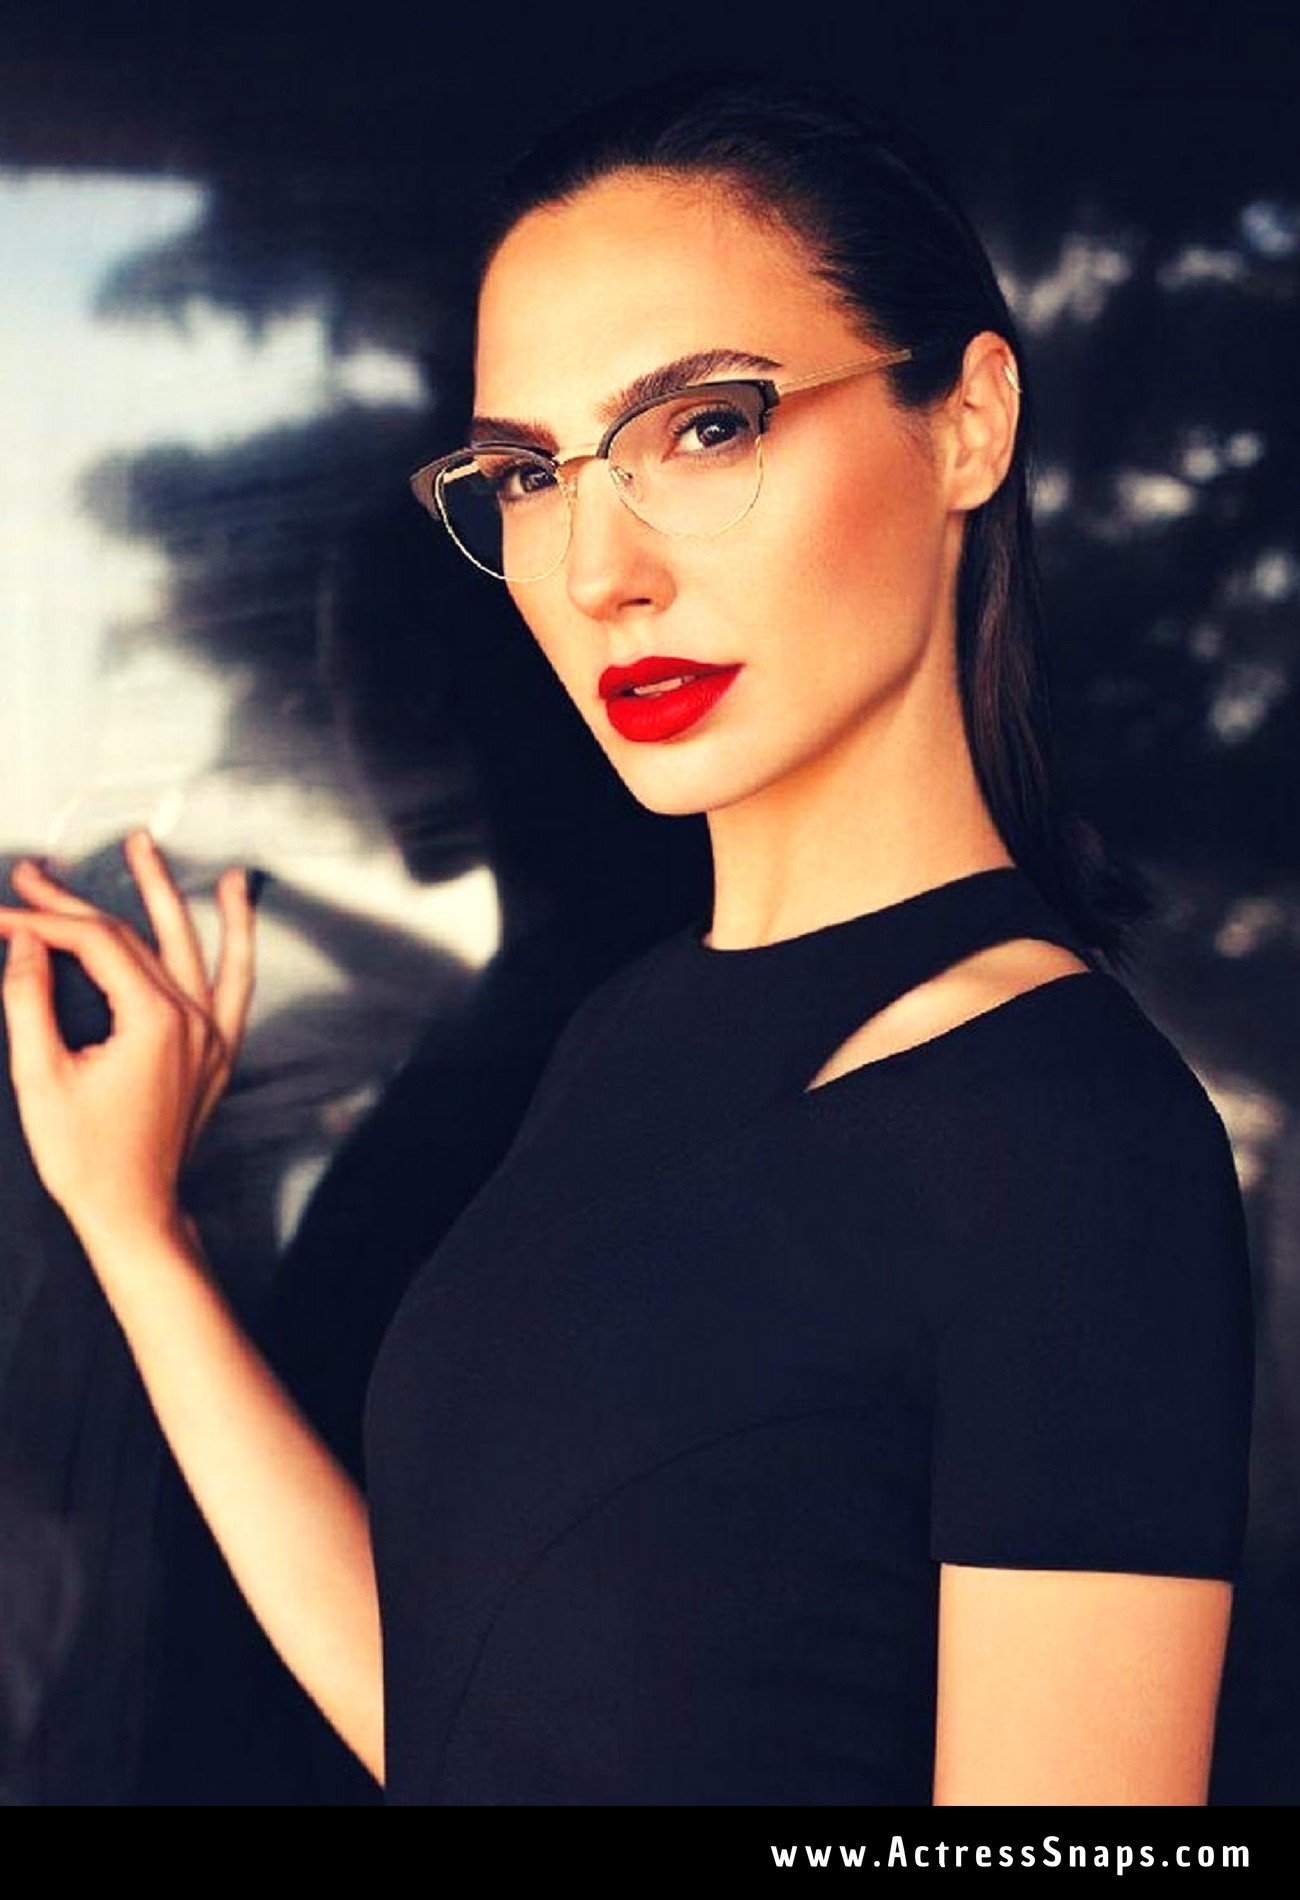 Hot Gal Gadot - Cool Ray Sunglasses Photo Shoot - Sexy Actress Pictures | Hot Actress Pictures - ActressSnaps.com